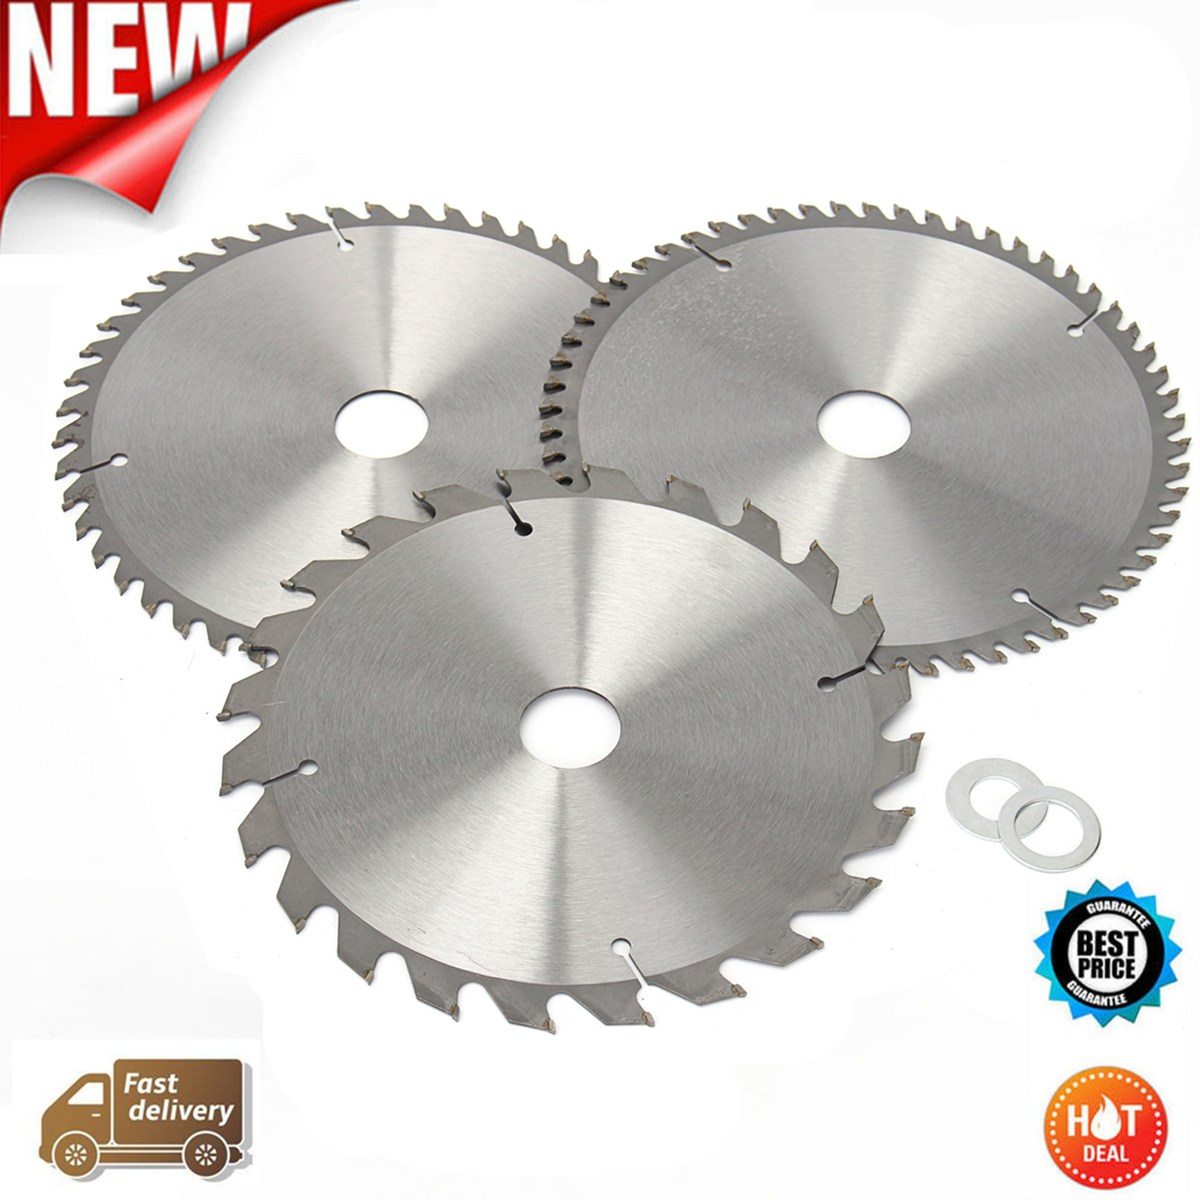 Drillpro 3pcs 210mm TCT 24/48/60T Circular Saw Blade Wood Aluminum Cutting Saw Blades General Purpose For Woodworking Power Tool no 1 twist plaster saws jewelry spiral teeth saw blades cutting blade for saw bow eight kinds of sizes 144 pcs bag